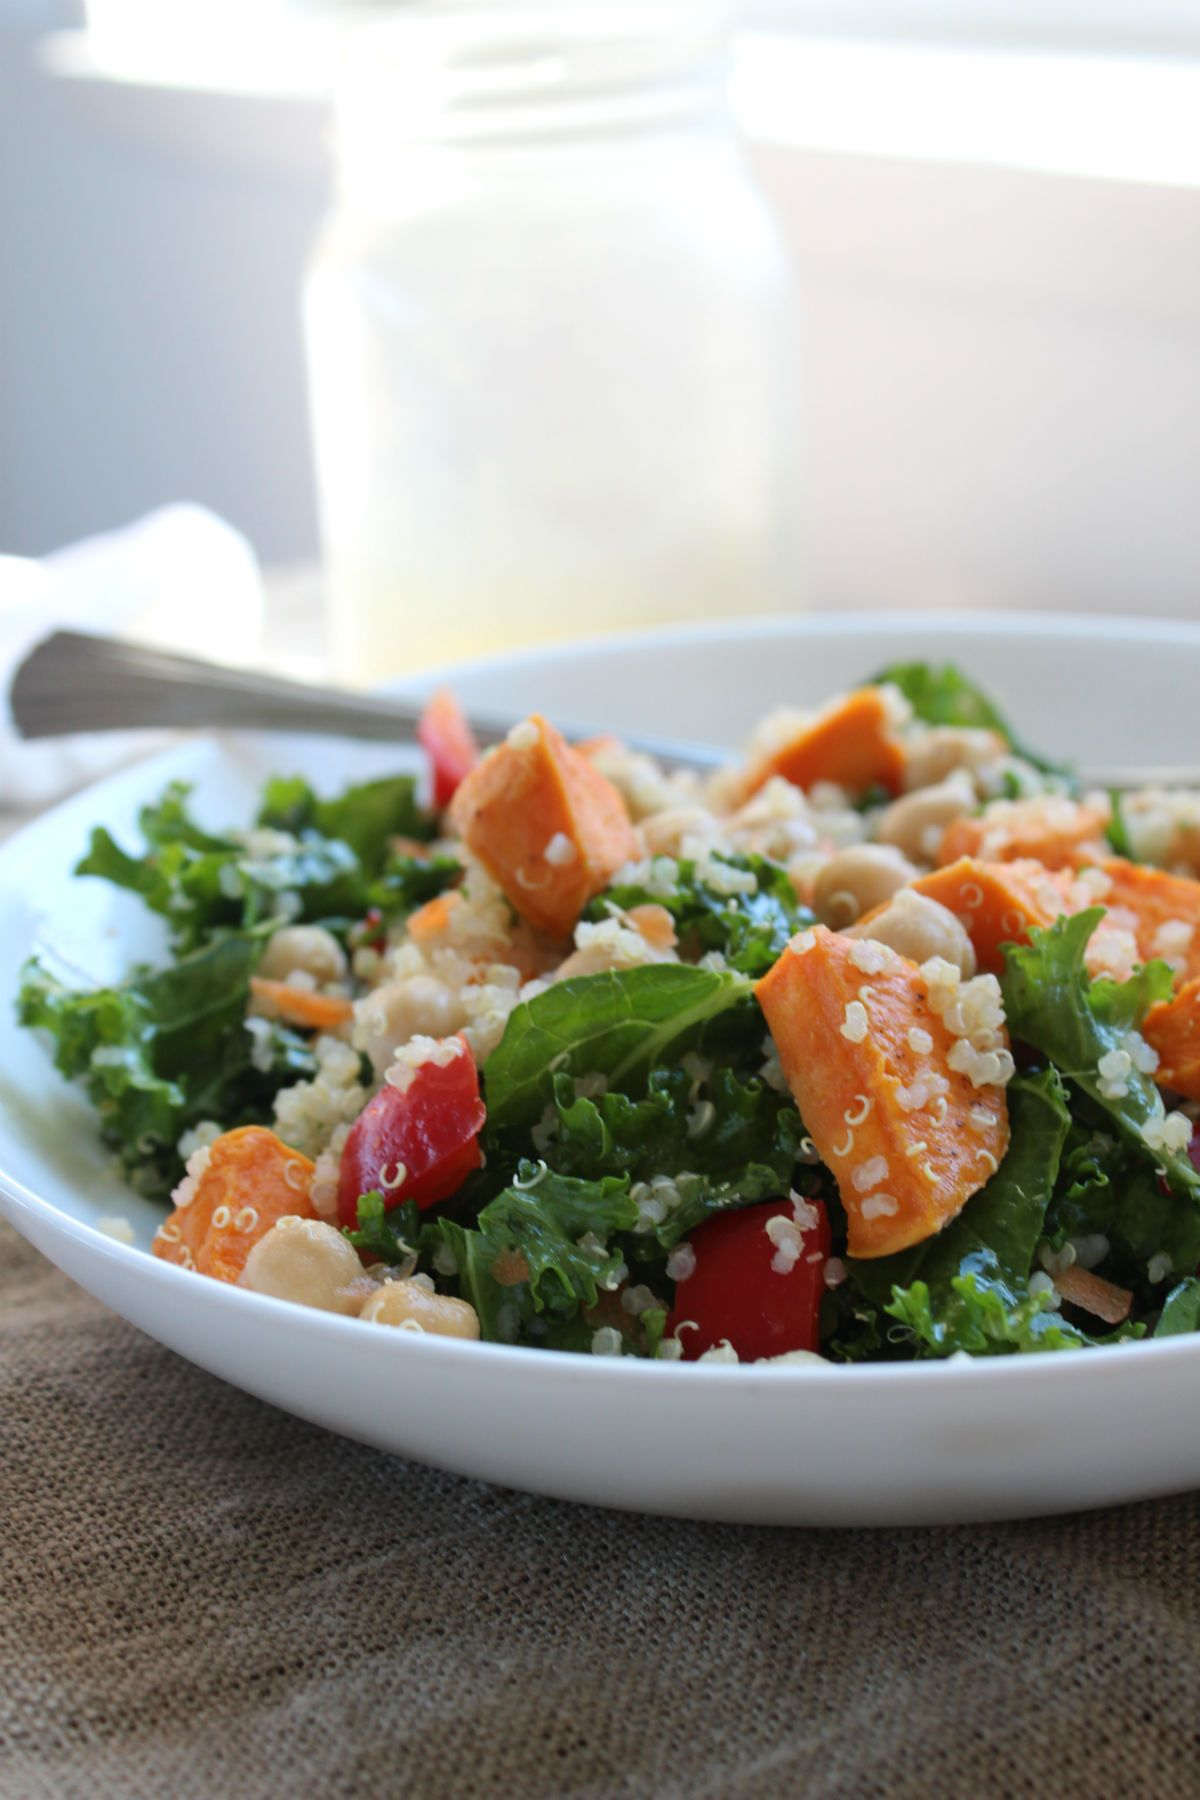 kale salad with dressing